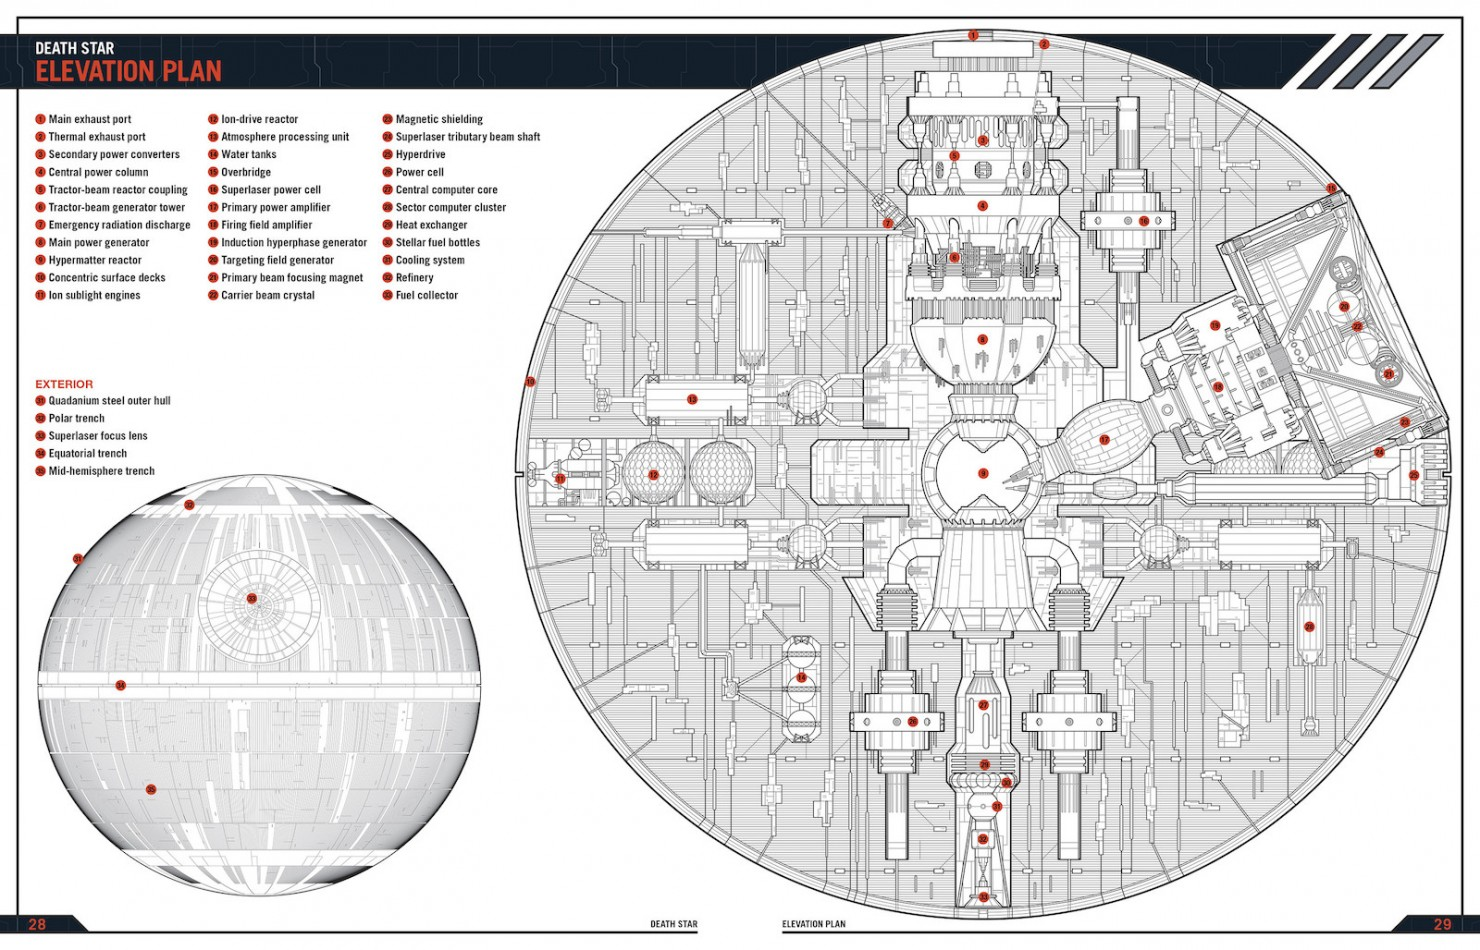 Death Star Owner's Technical Manual 5